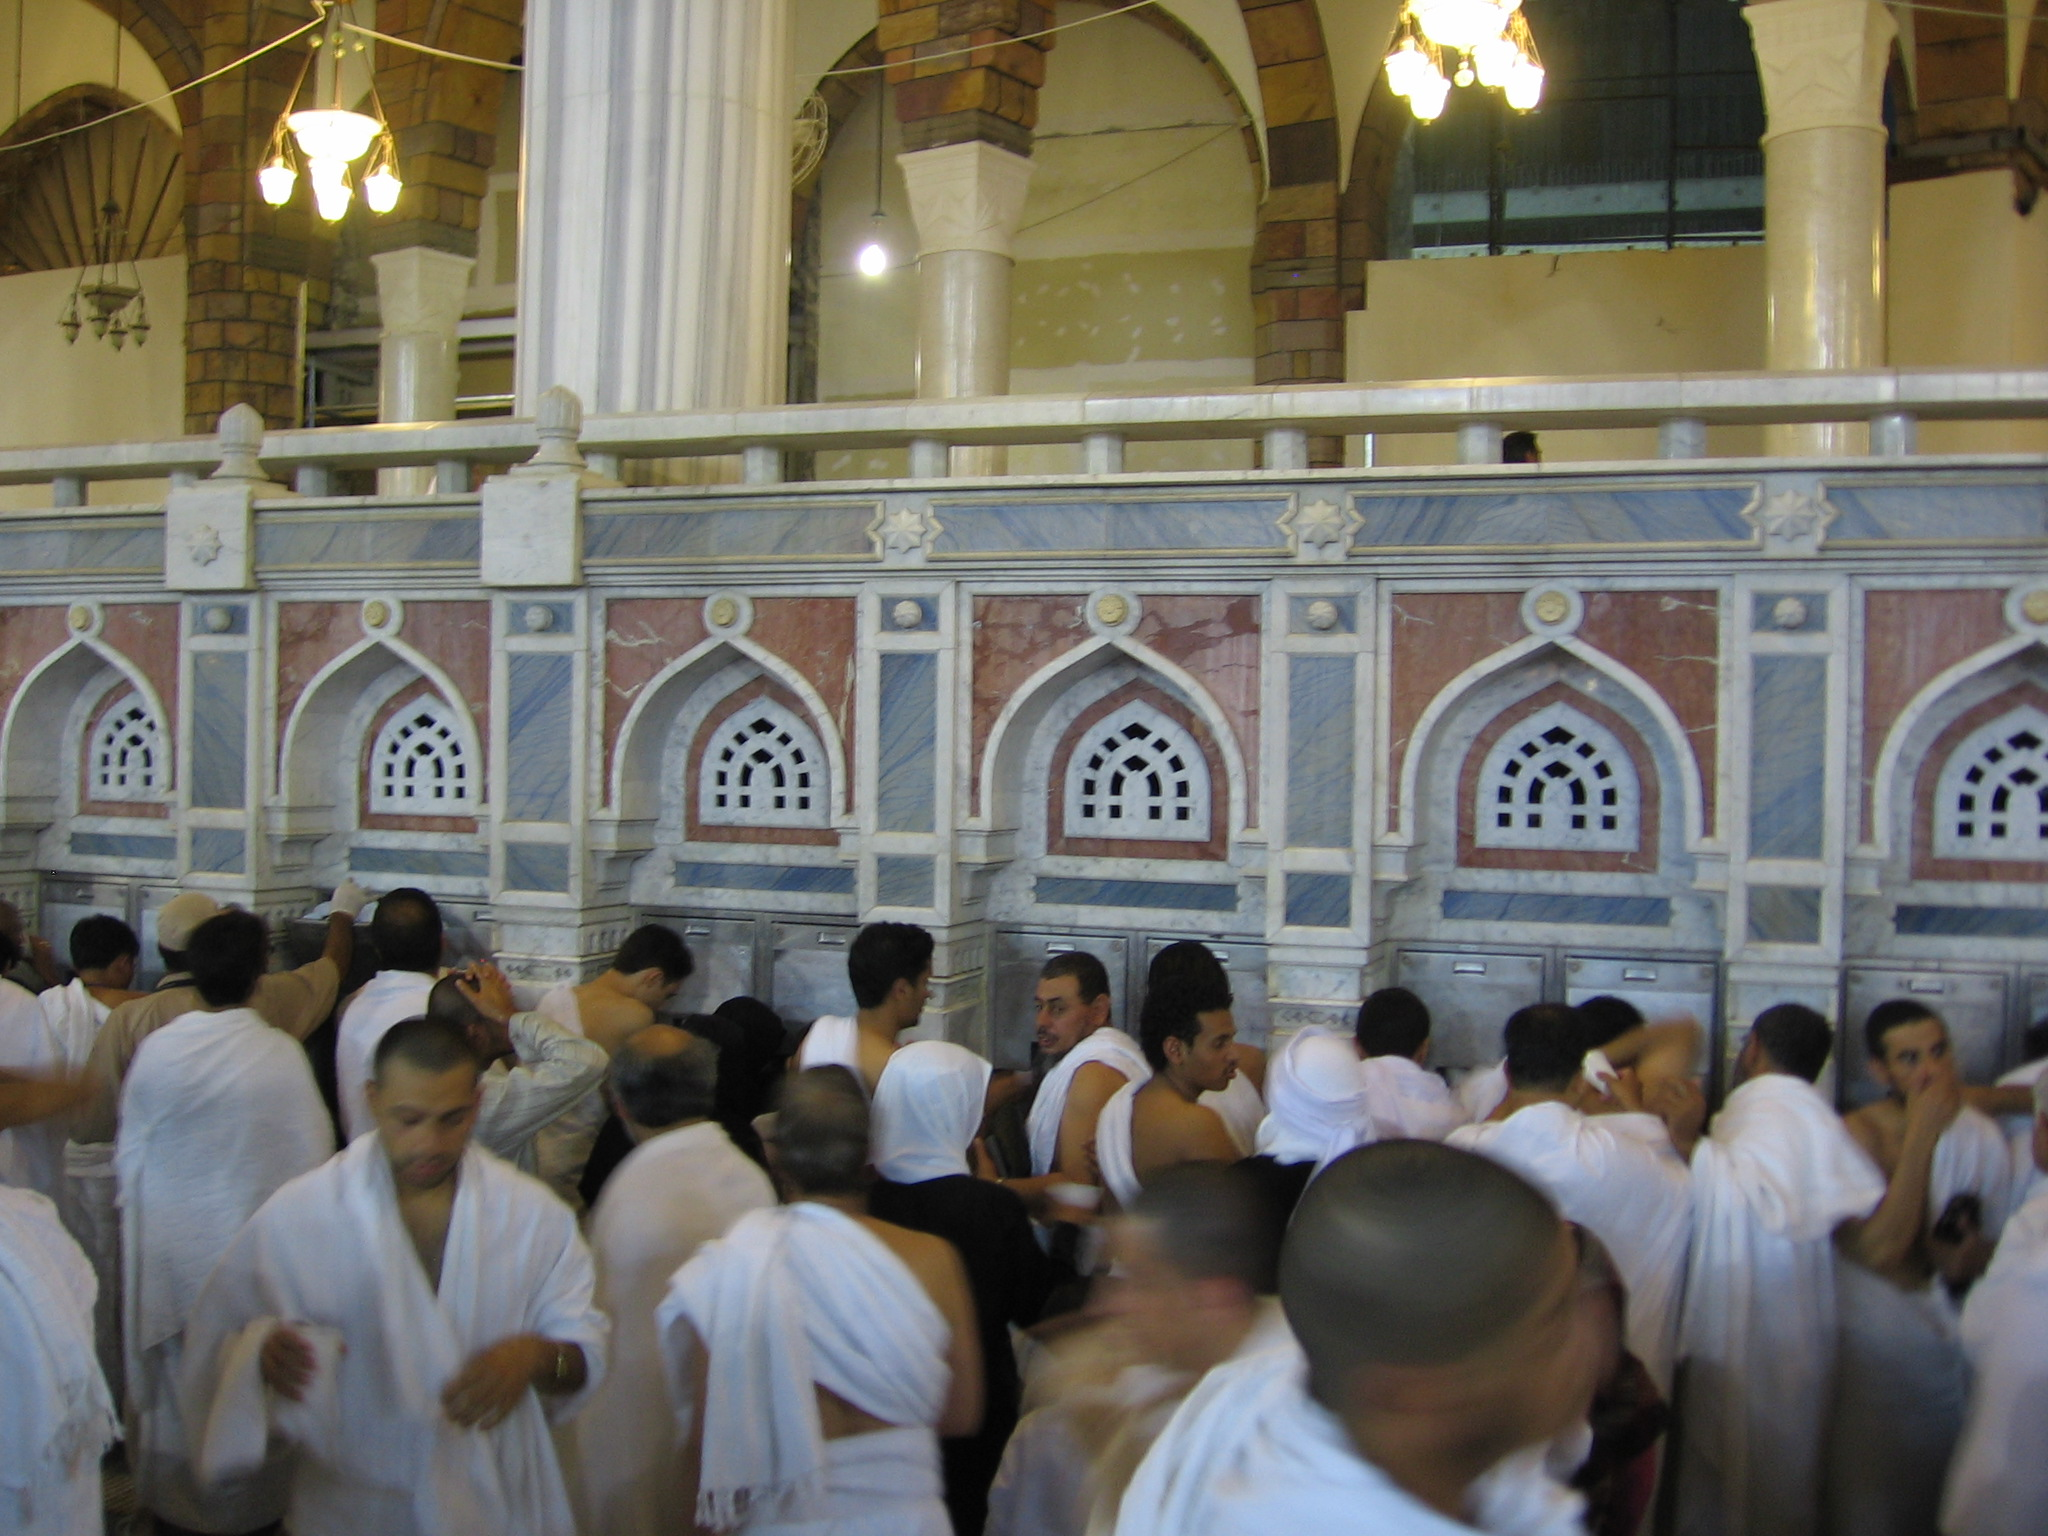 Hajj, Pilgrims, Mecca, The Well of Zamzam